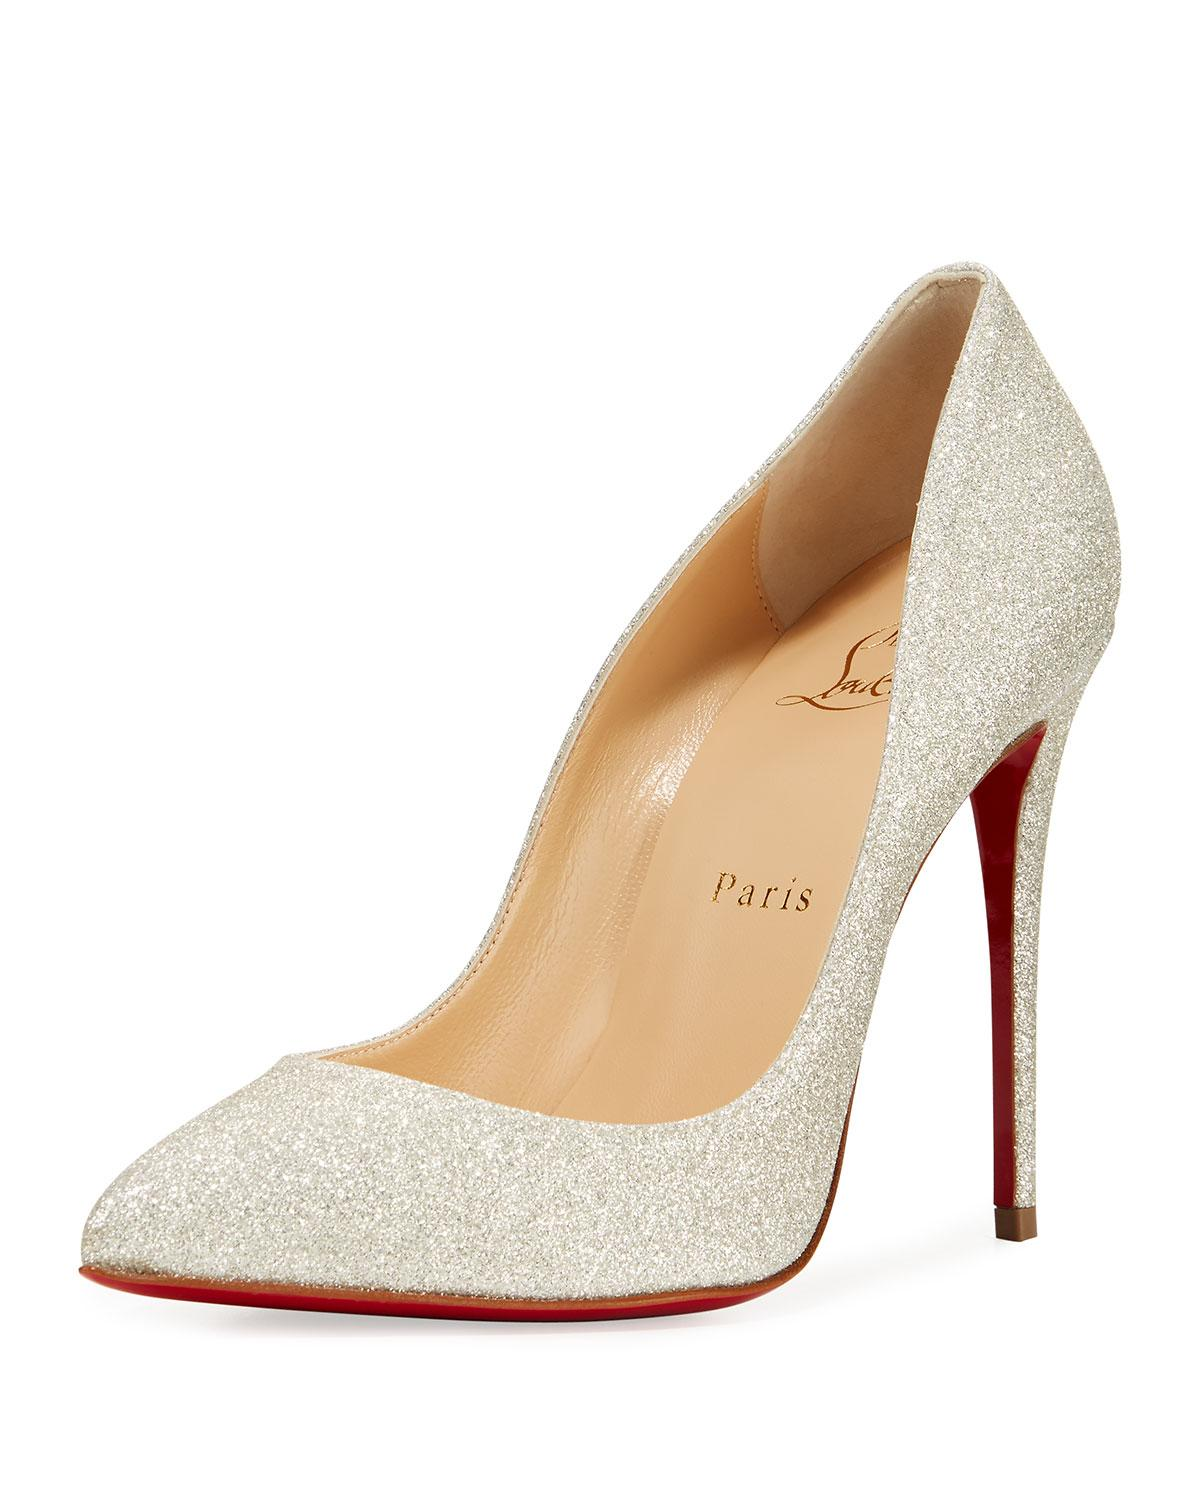 bb617ddb4b0b Christian Louboutin. Women s White Pigalle Follies Glittered Red Sole Pumps